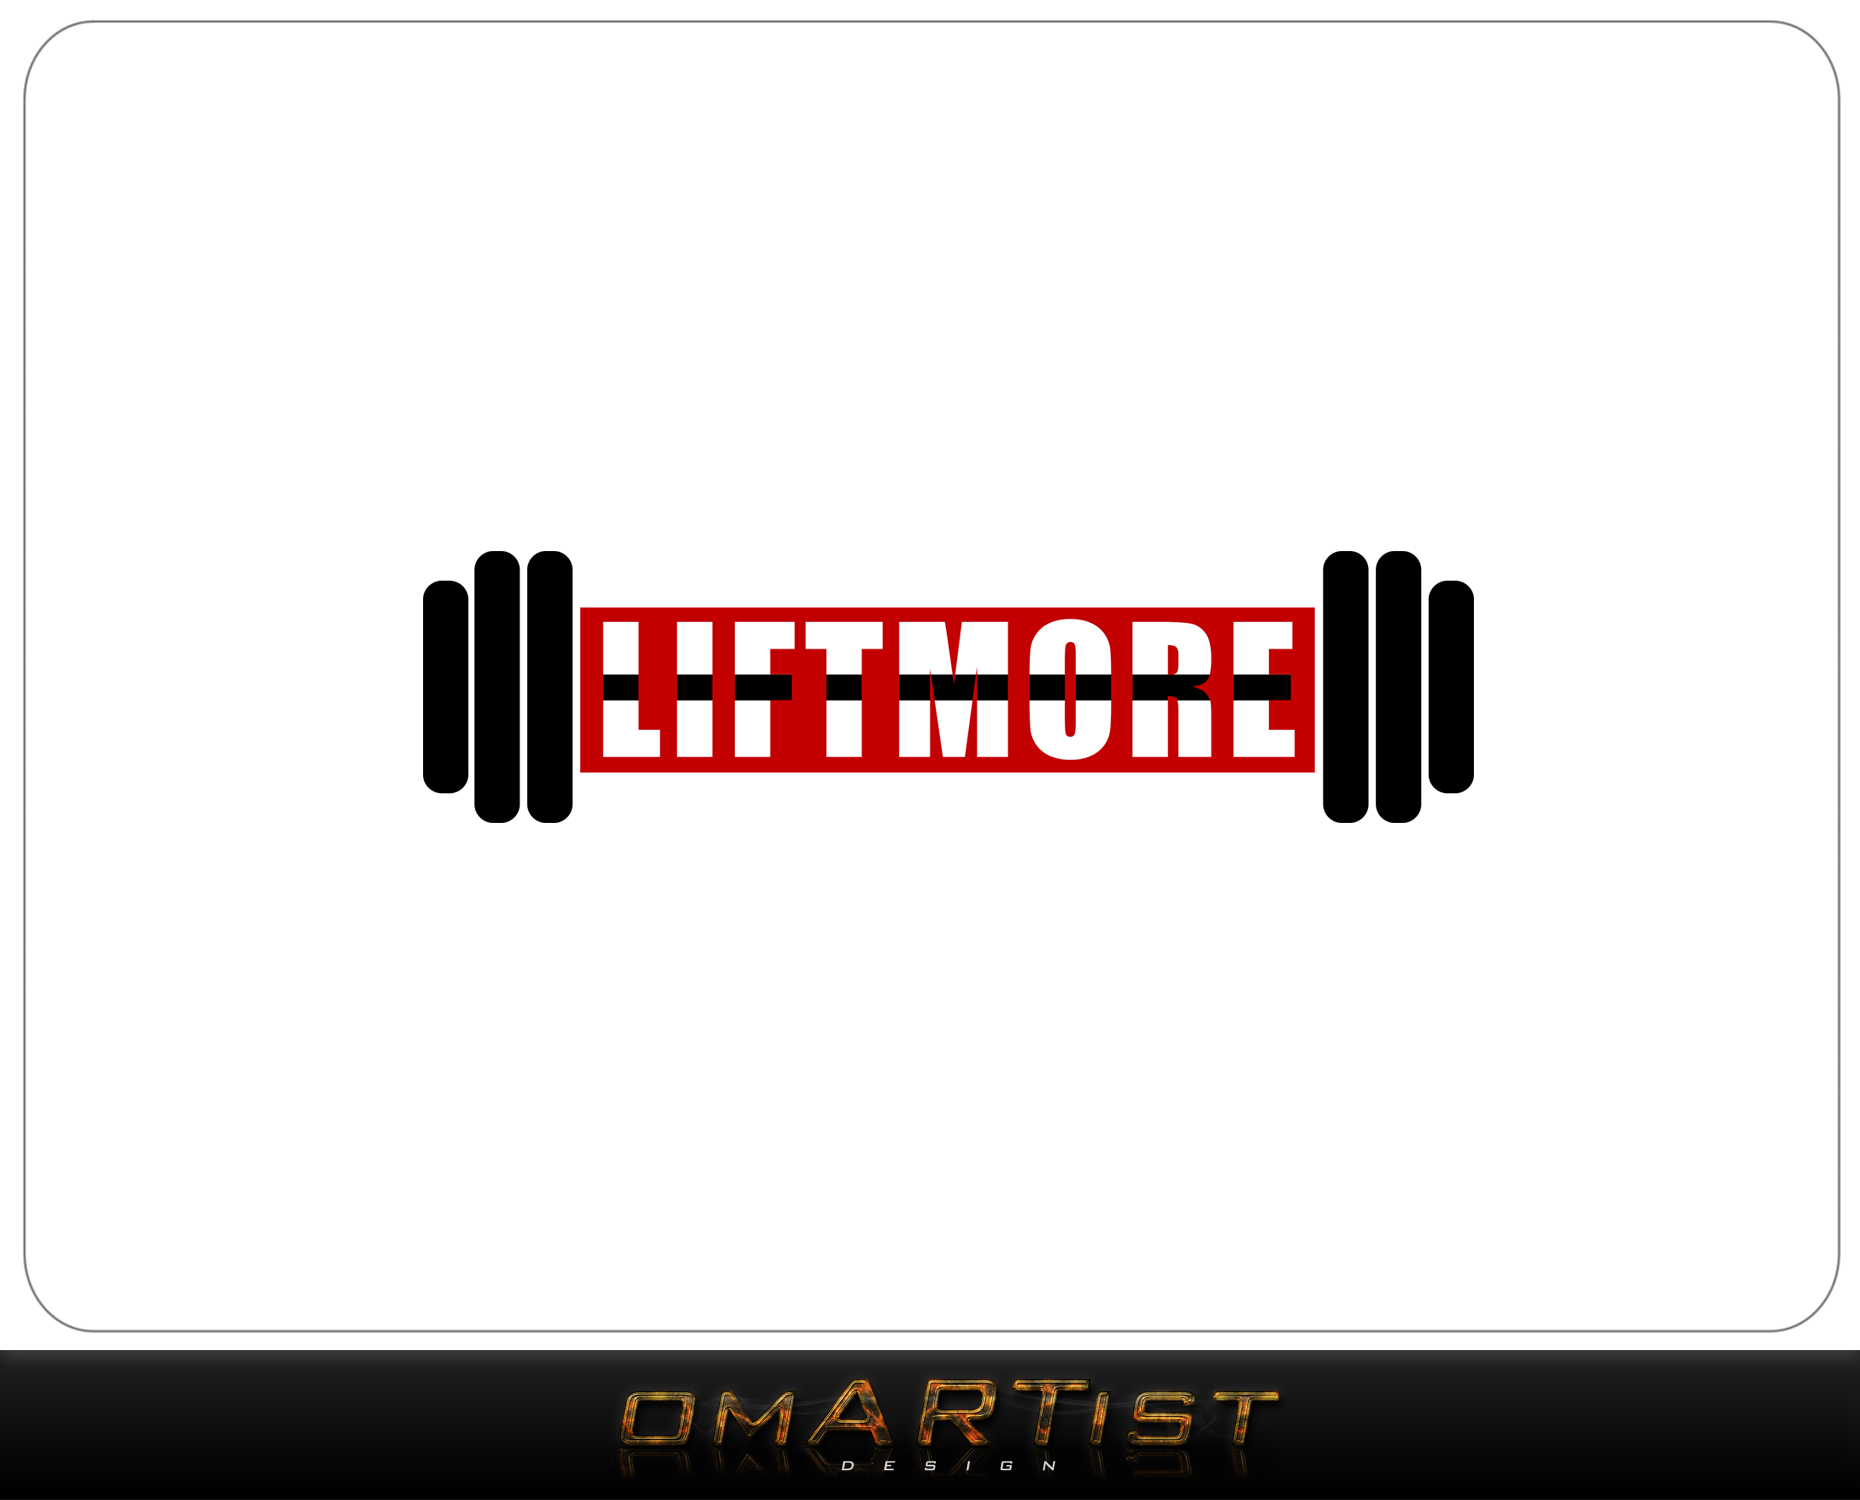 Logo Design by omARTist - Entry No. 119 in the Logo Design Contest Unique Logo Design Wanted for Liftmore.